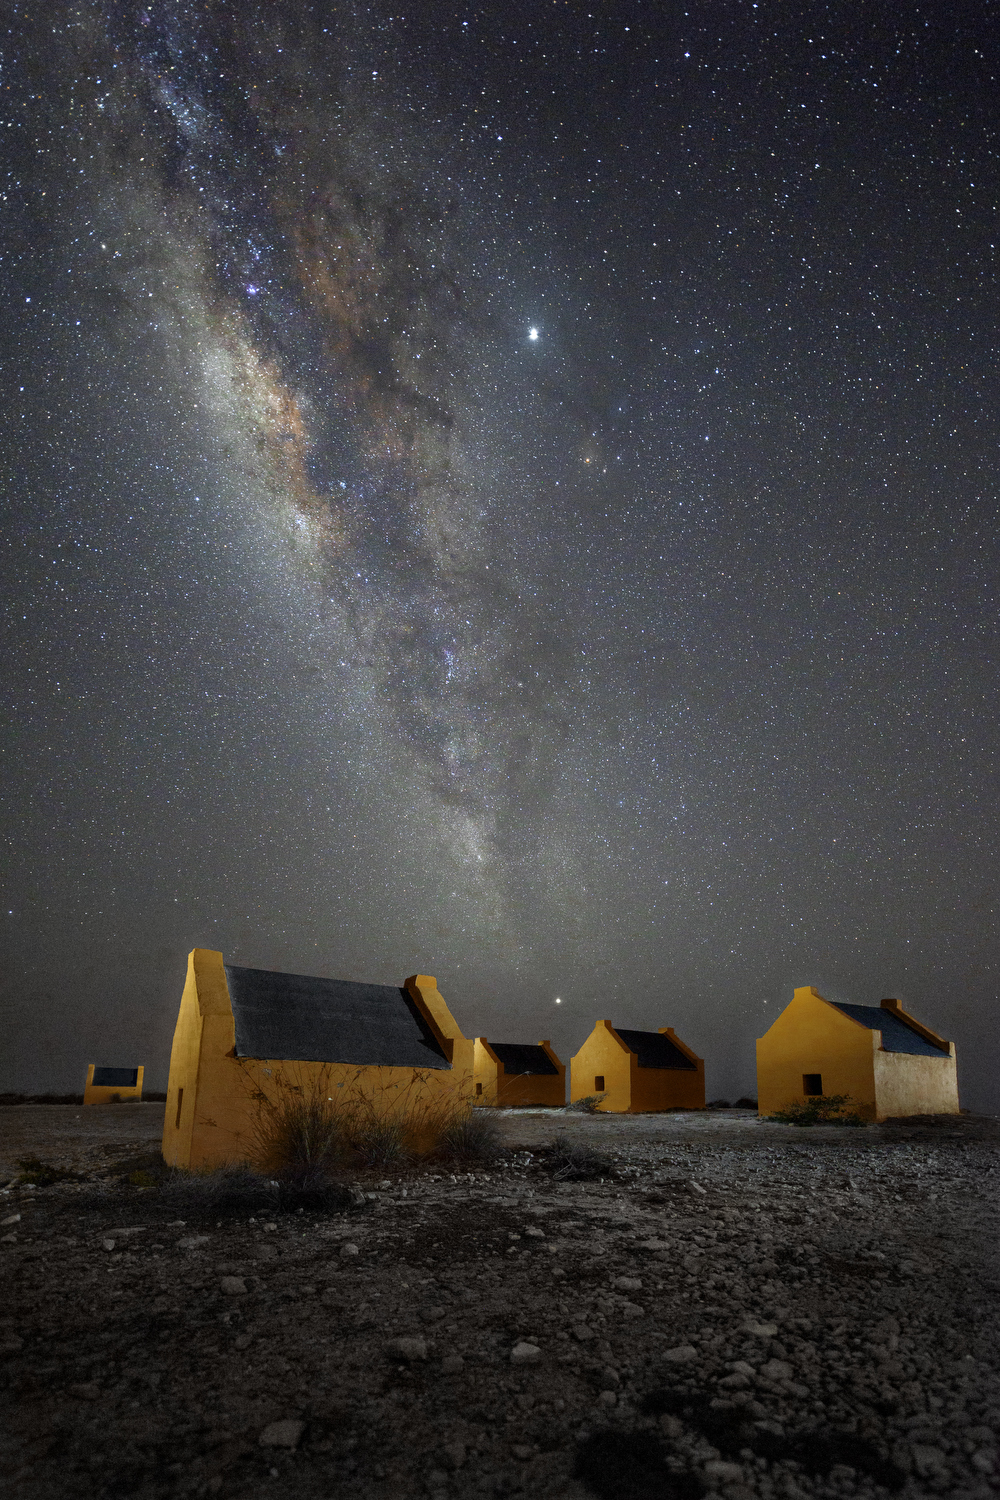 The Milky Way arches above the red slave huts on the southern tip of Bonaire, Friday, July 26, 2019. The four-foot high huts were built in the 1850s, and are a remnant of a time when Dutch colonists used slave labor to extract salt from sea water on the south end of the island.